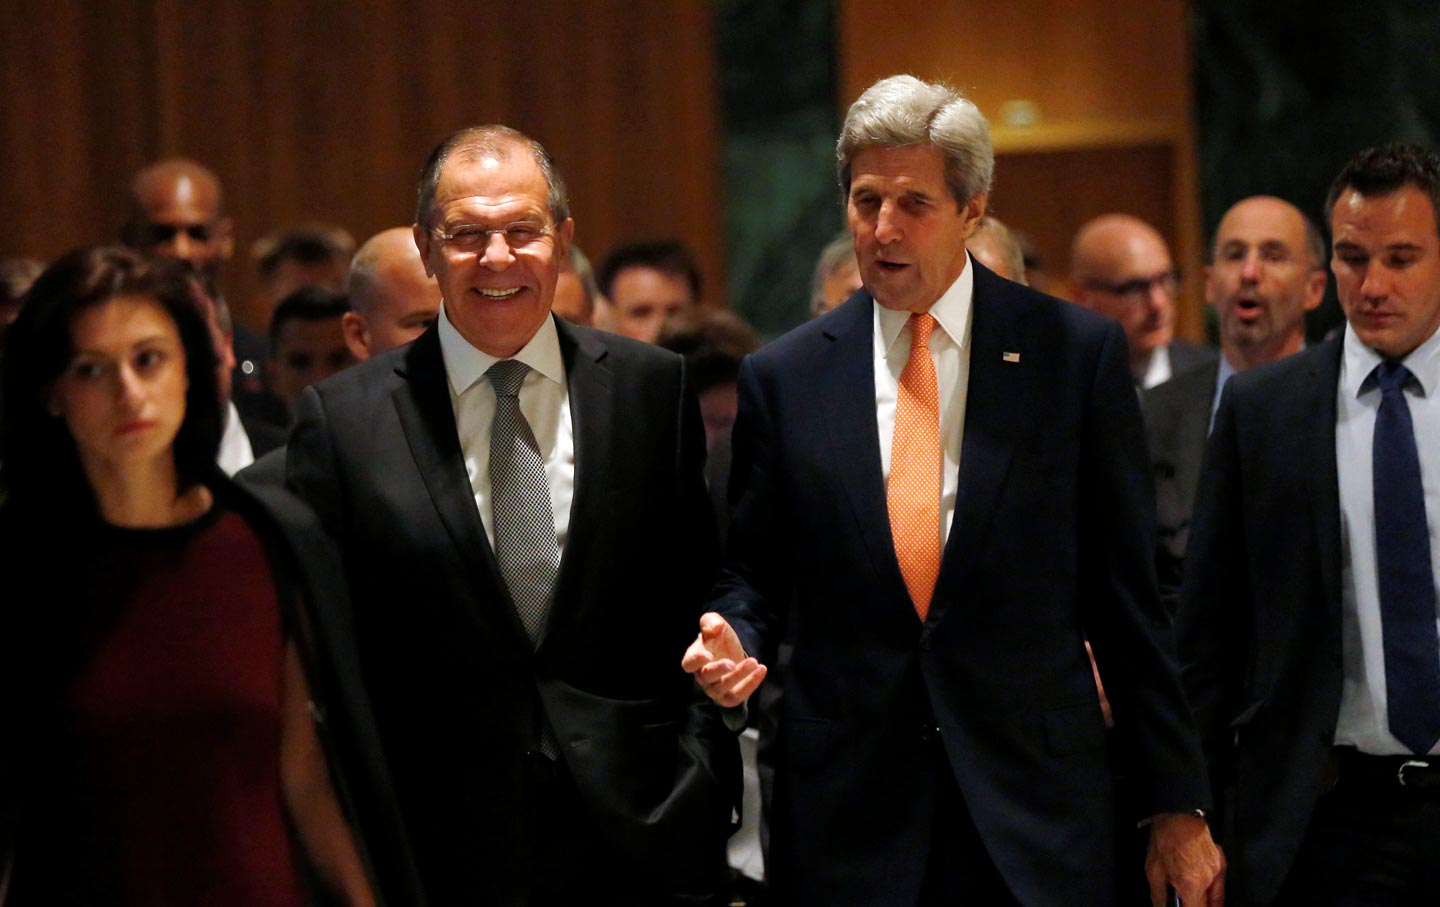 Kerry And Lavrov S Syrian Diplomacy Shows Once Again The Value Of Detente The Nation